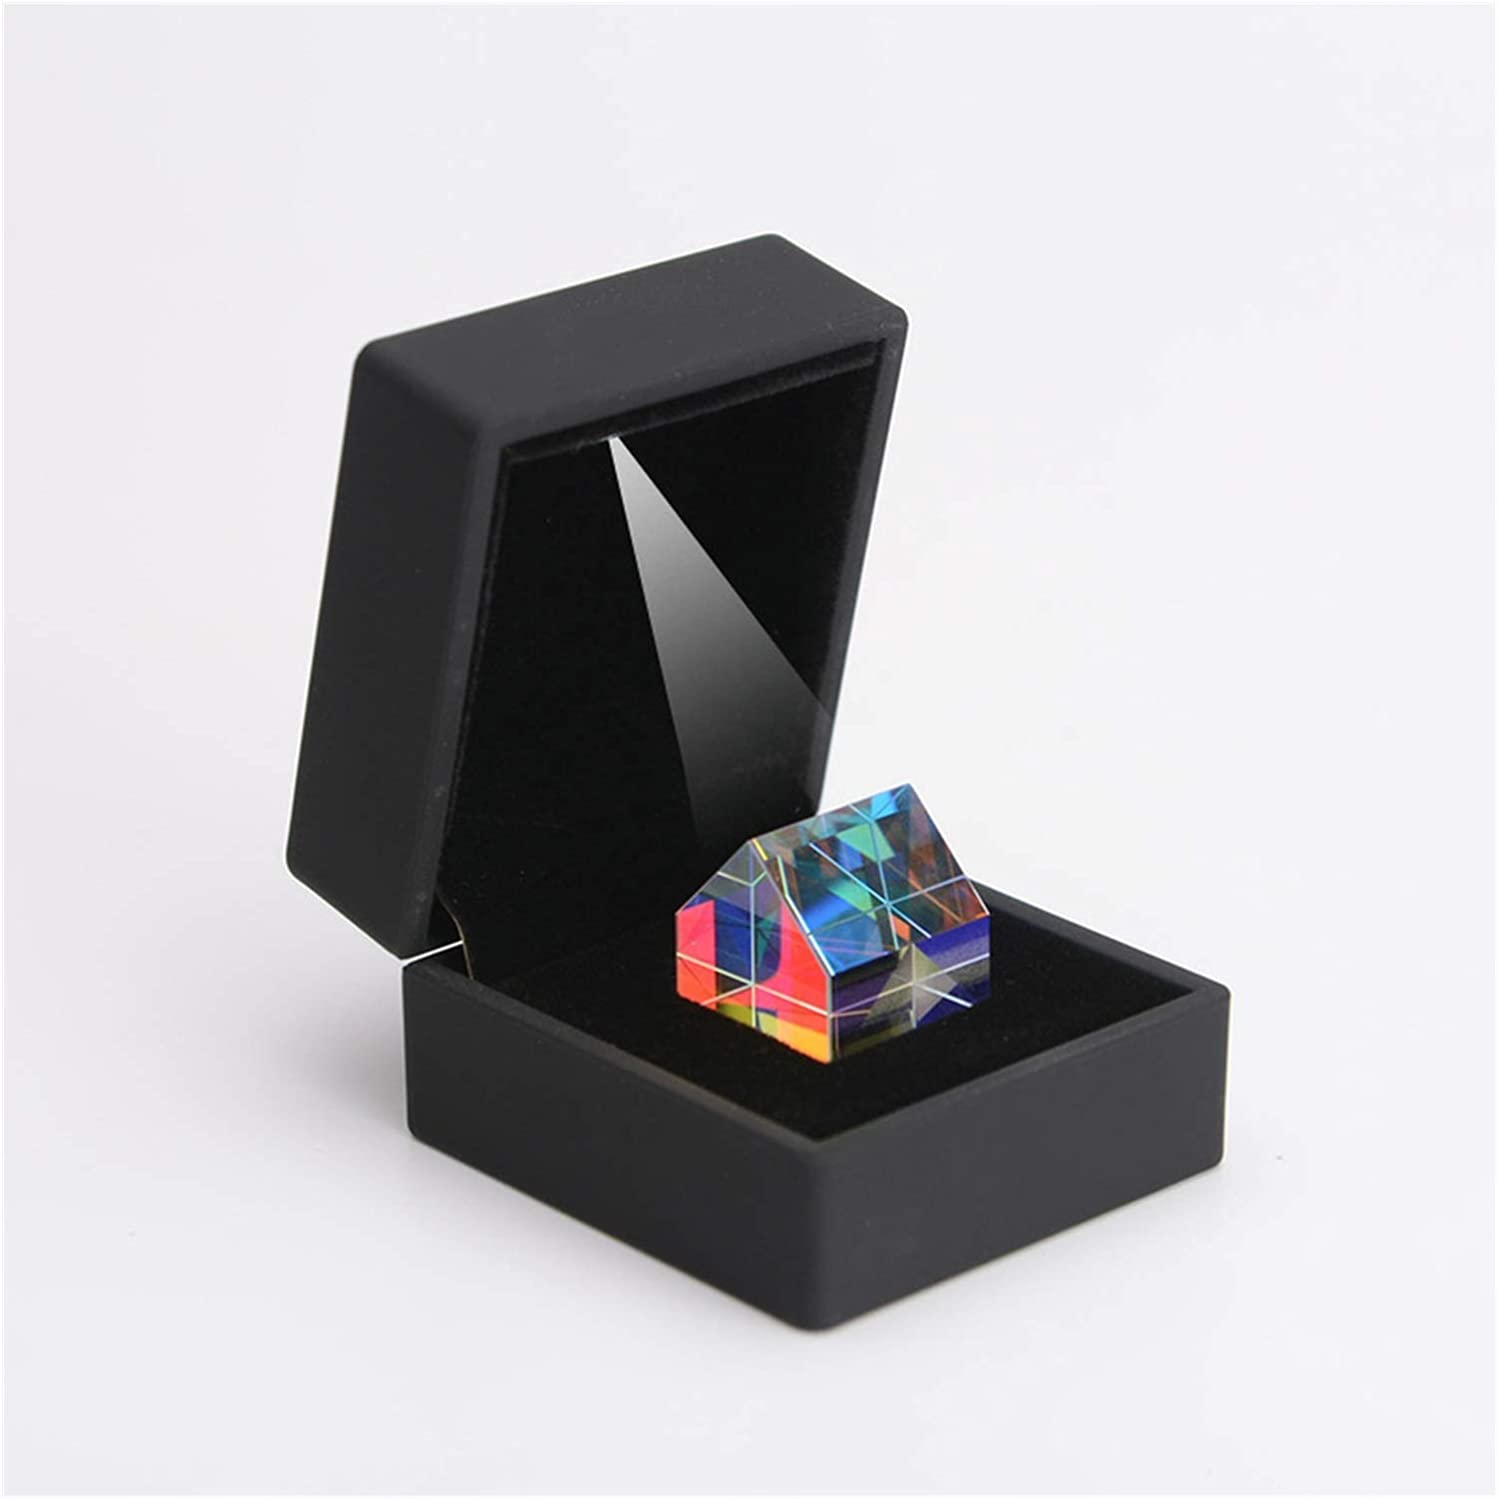 Glass Prism Cube Elegant Cabin of Light Same Ranking TOP5 Pr Colour The with Trembles